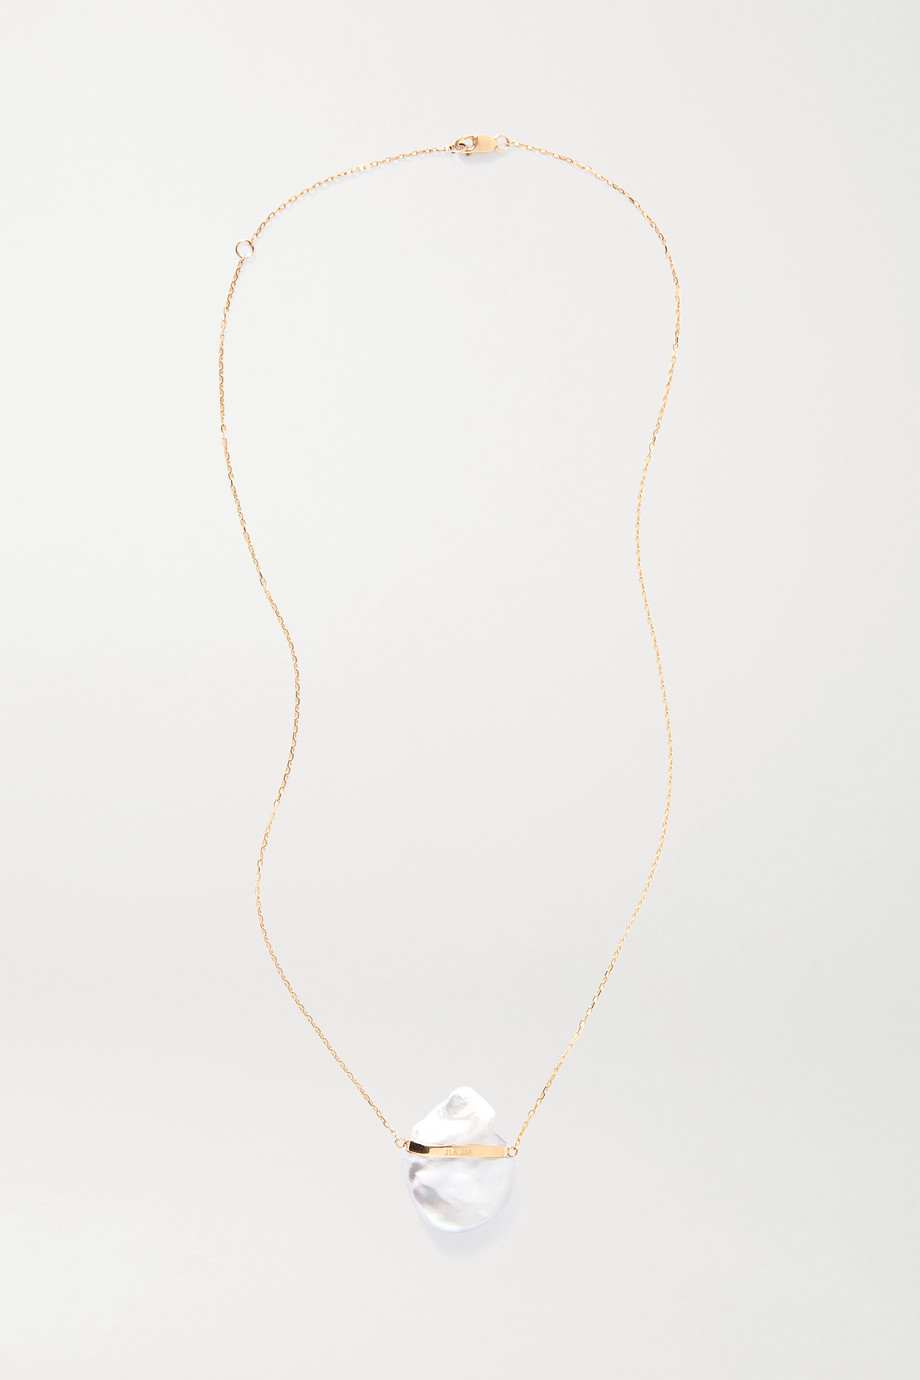 JIA JIA 14-karat gold pearl necklace